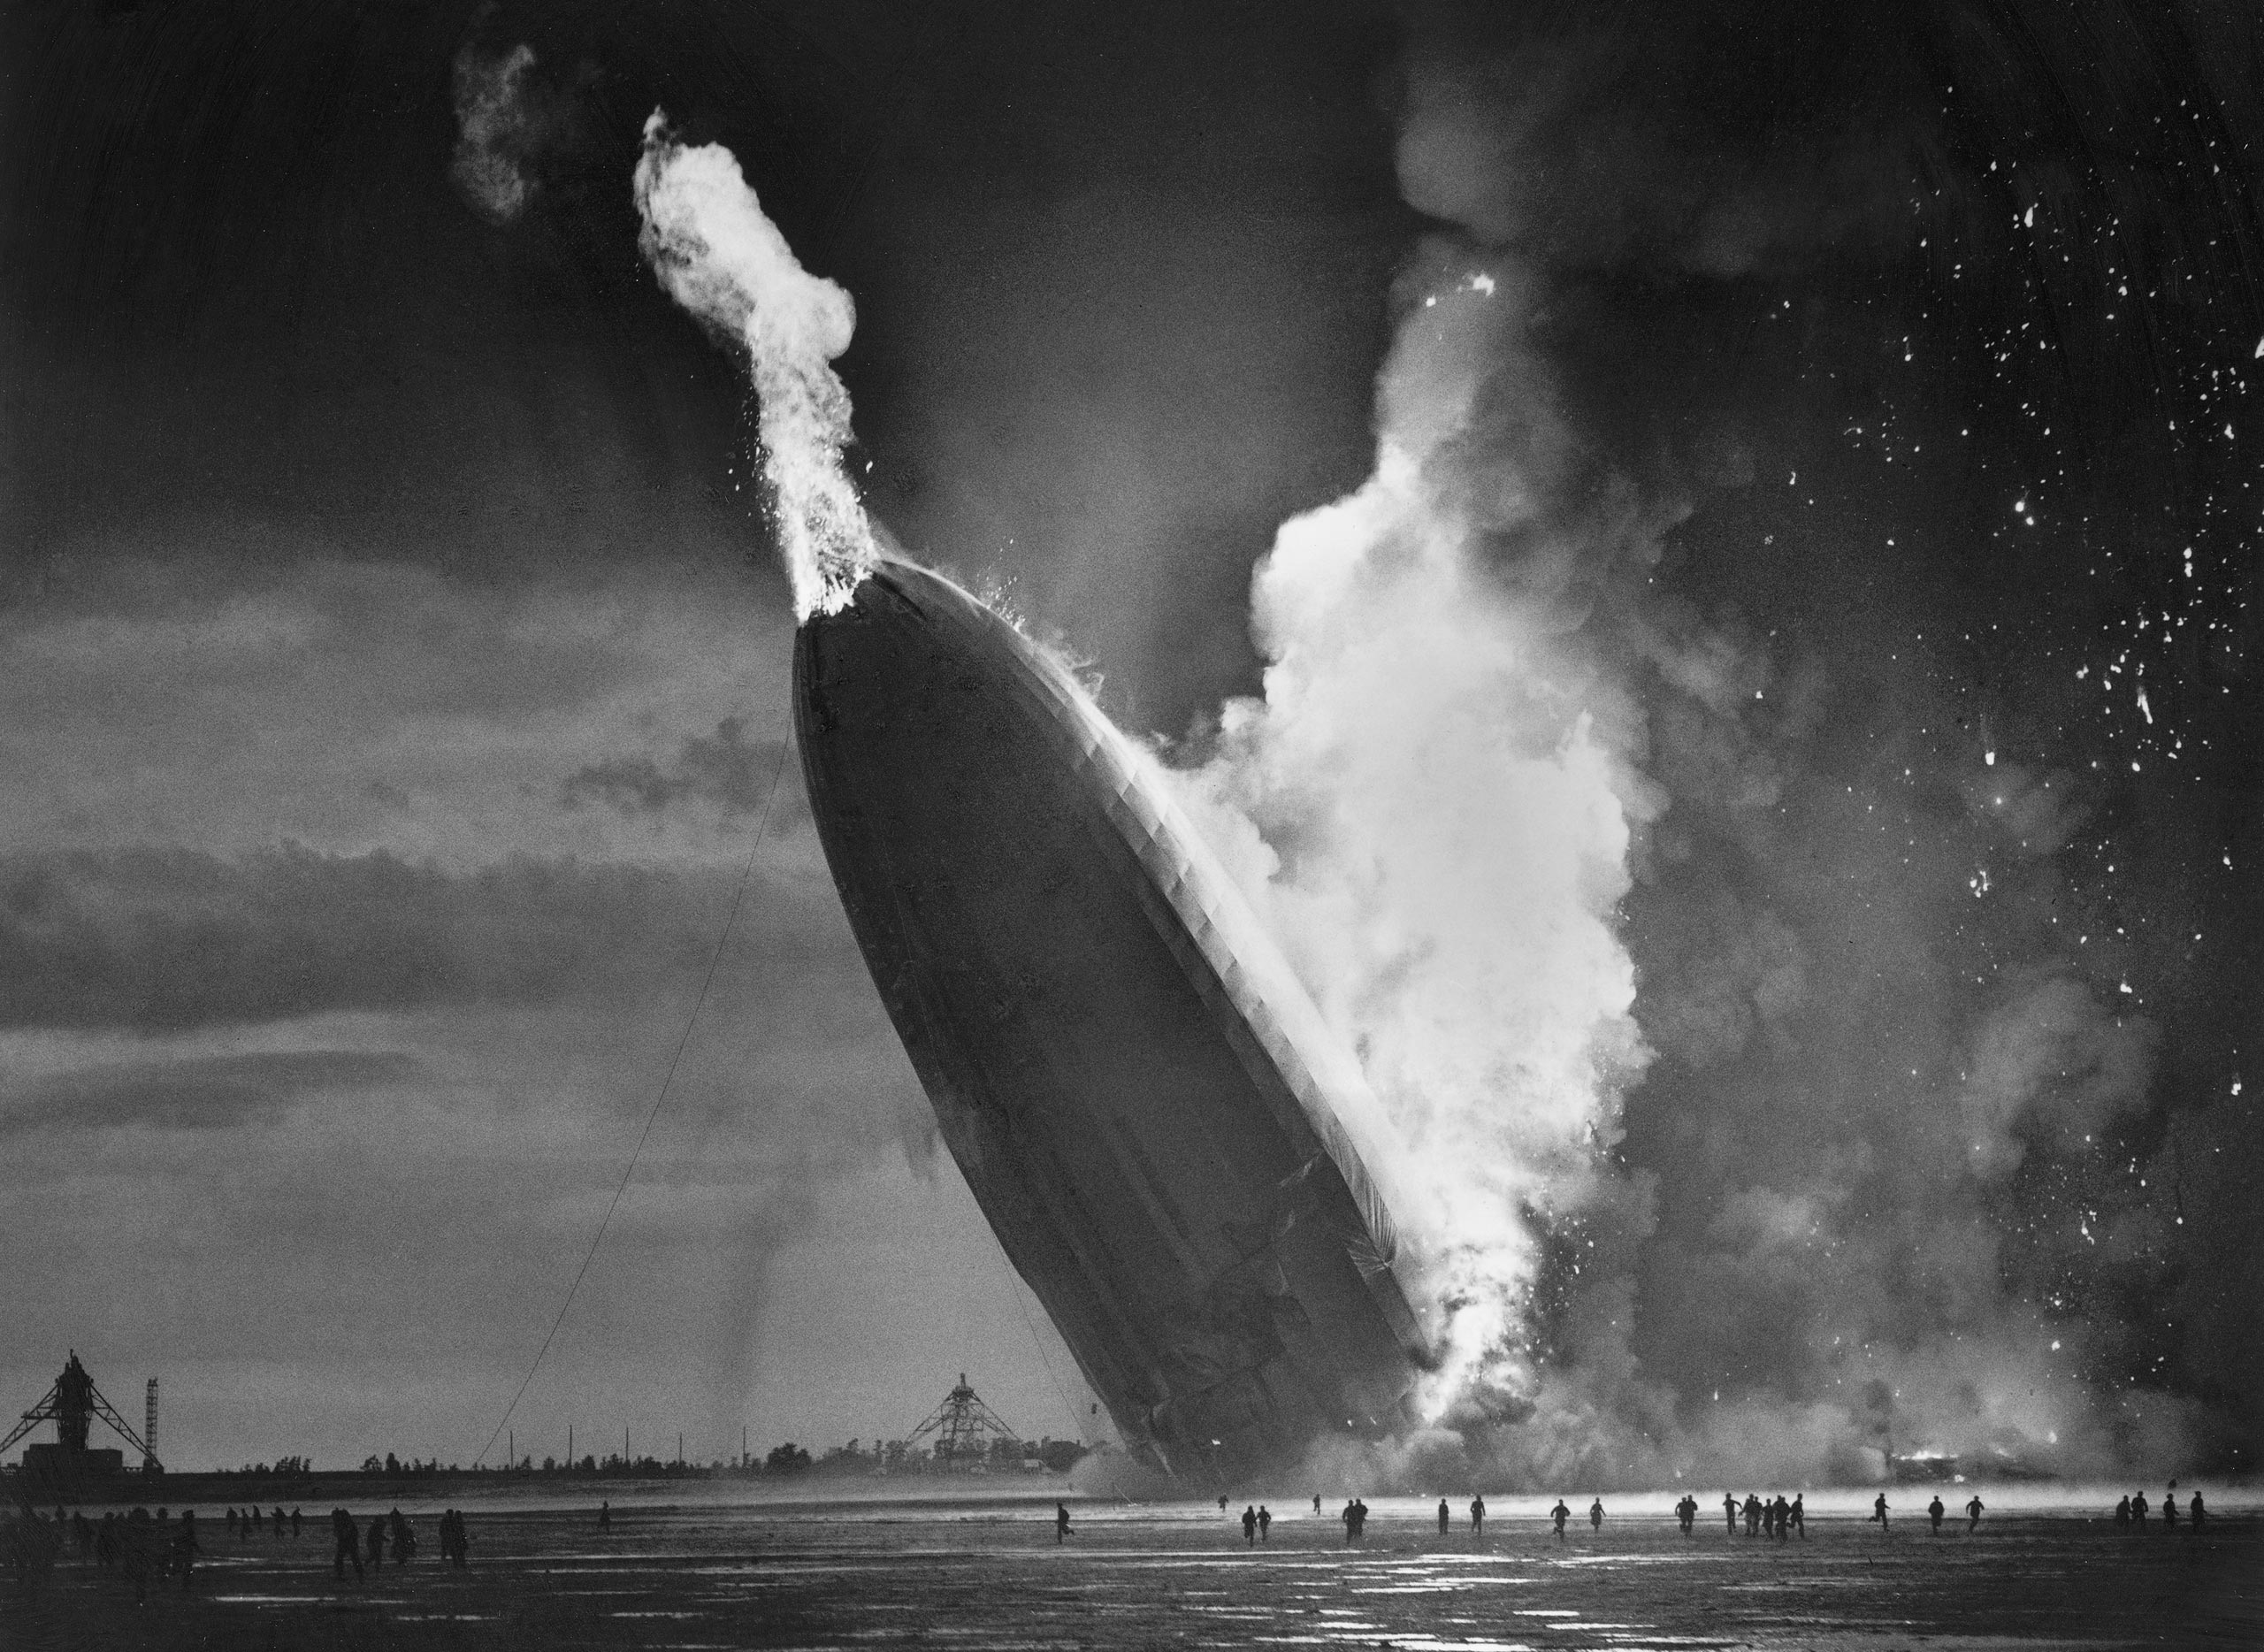 The German dirigible Hindenburg crashes to earth, tail first, in flaming ruins after exploding on May 6, 1937, at the U.S. Naval Station in Lakehurst, N.J.